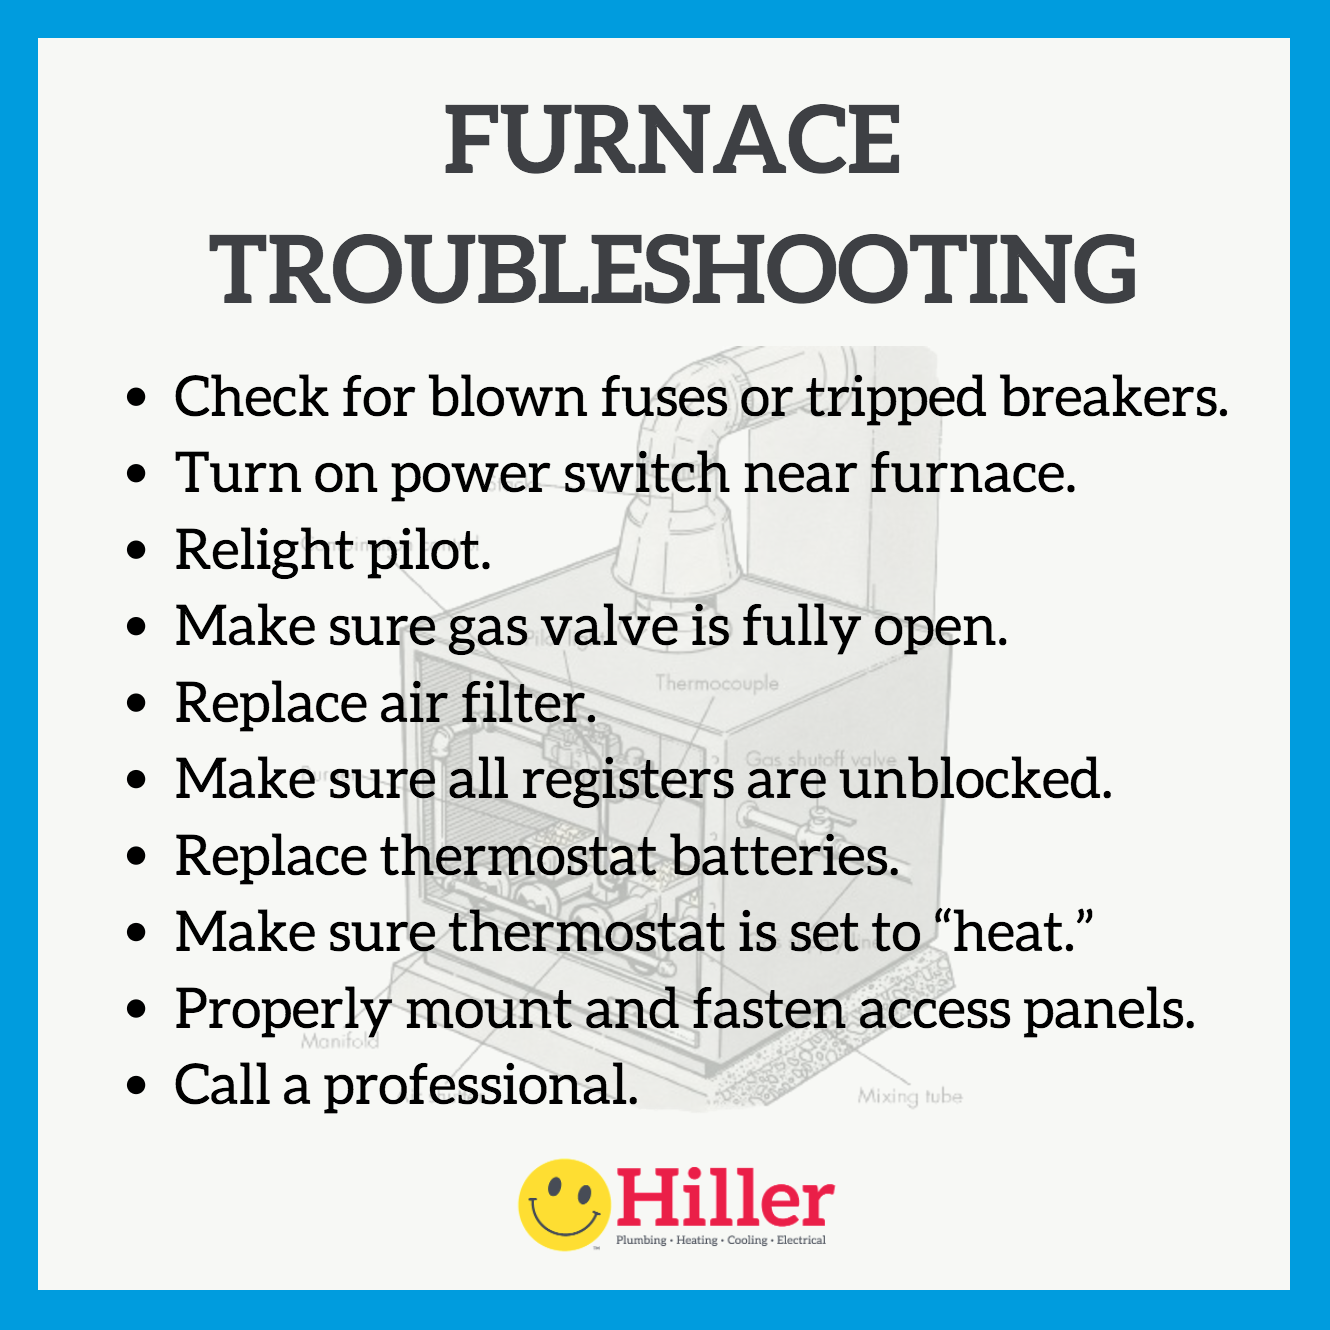 Gas Furnace Troubleshooting And Repair Furnace Troubleshooting Furnace Gas Furnace